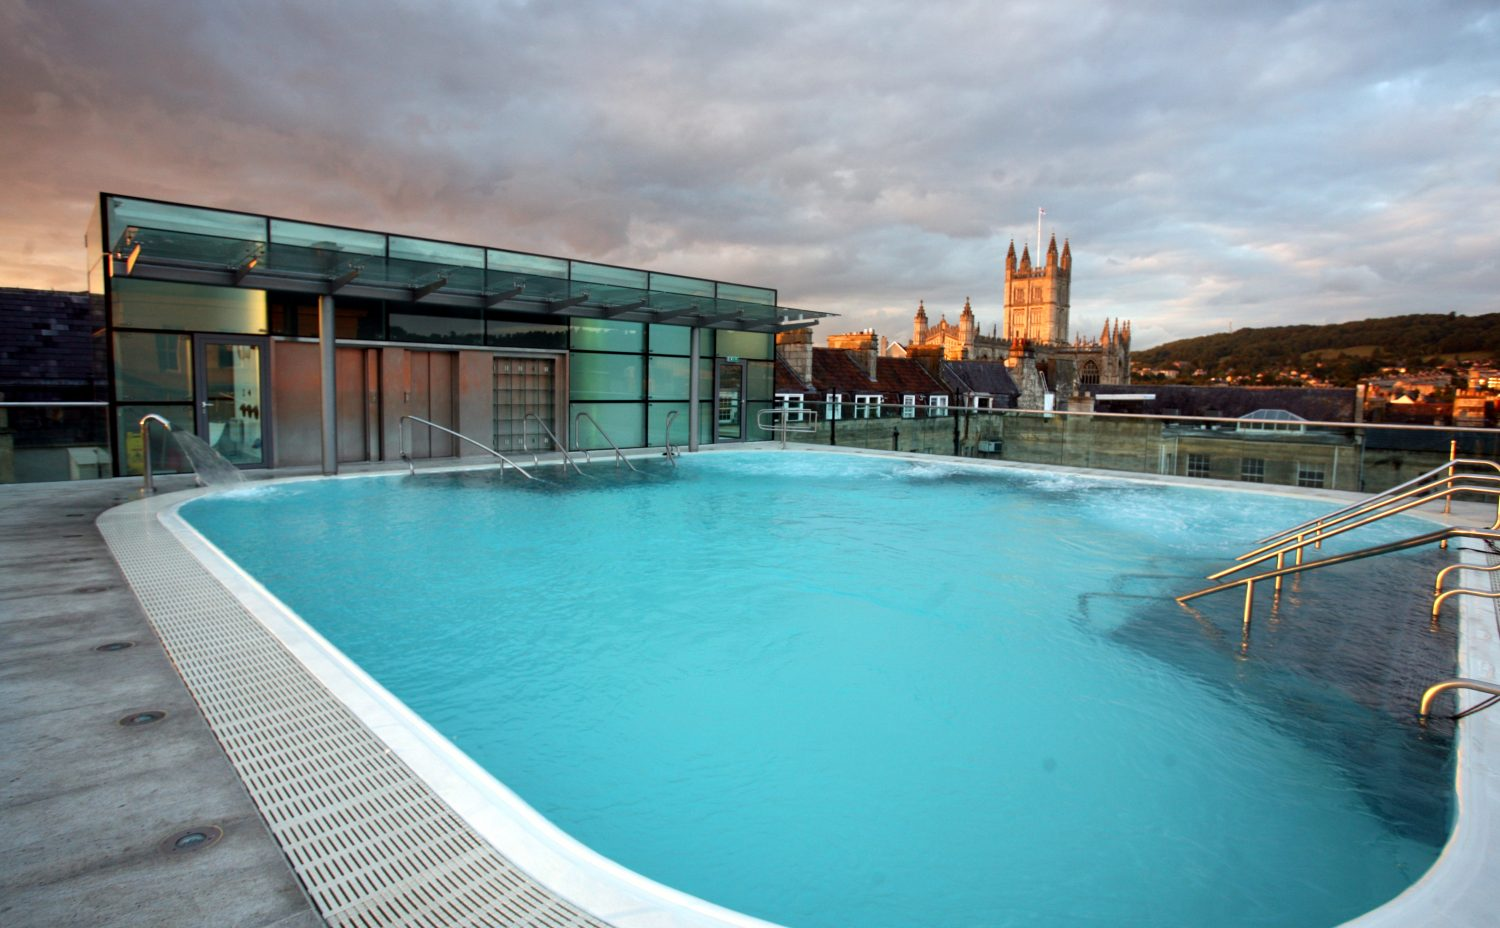 Photo courtesy of the Thermae Bath Spa